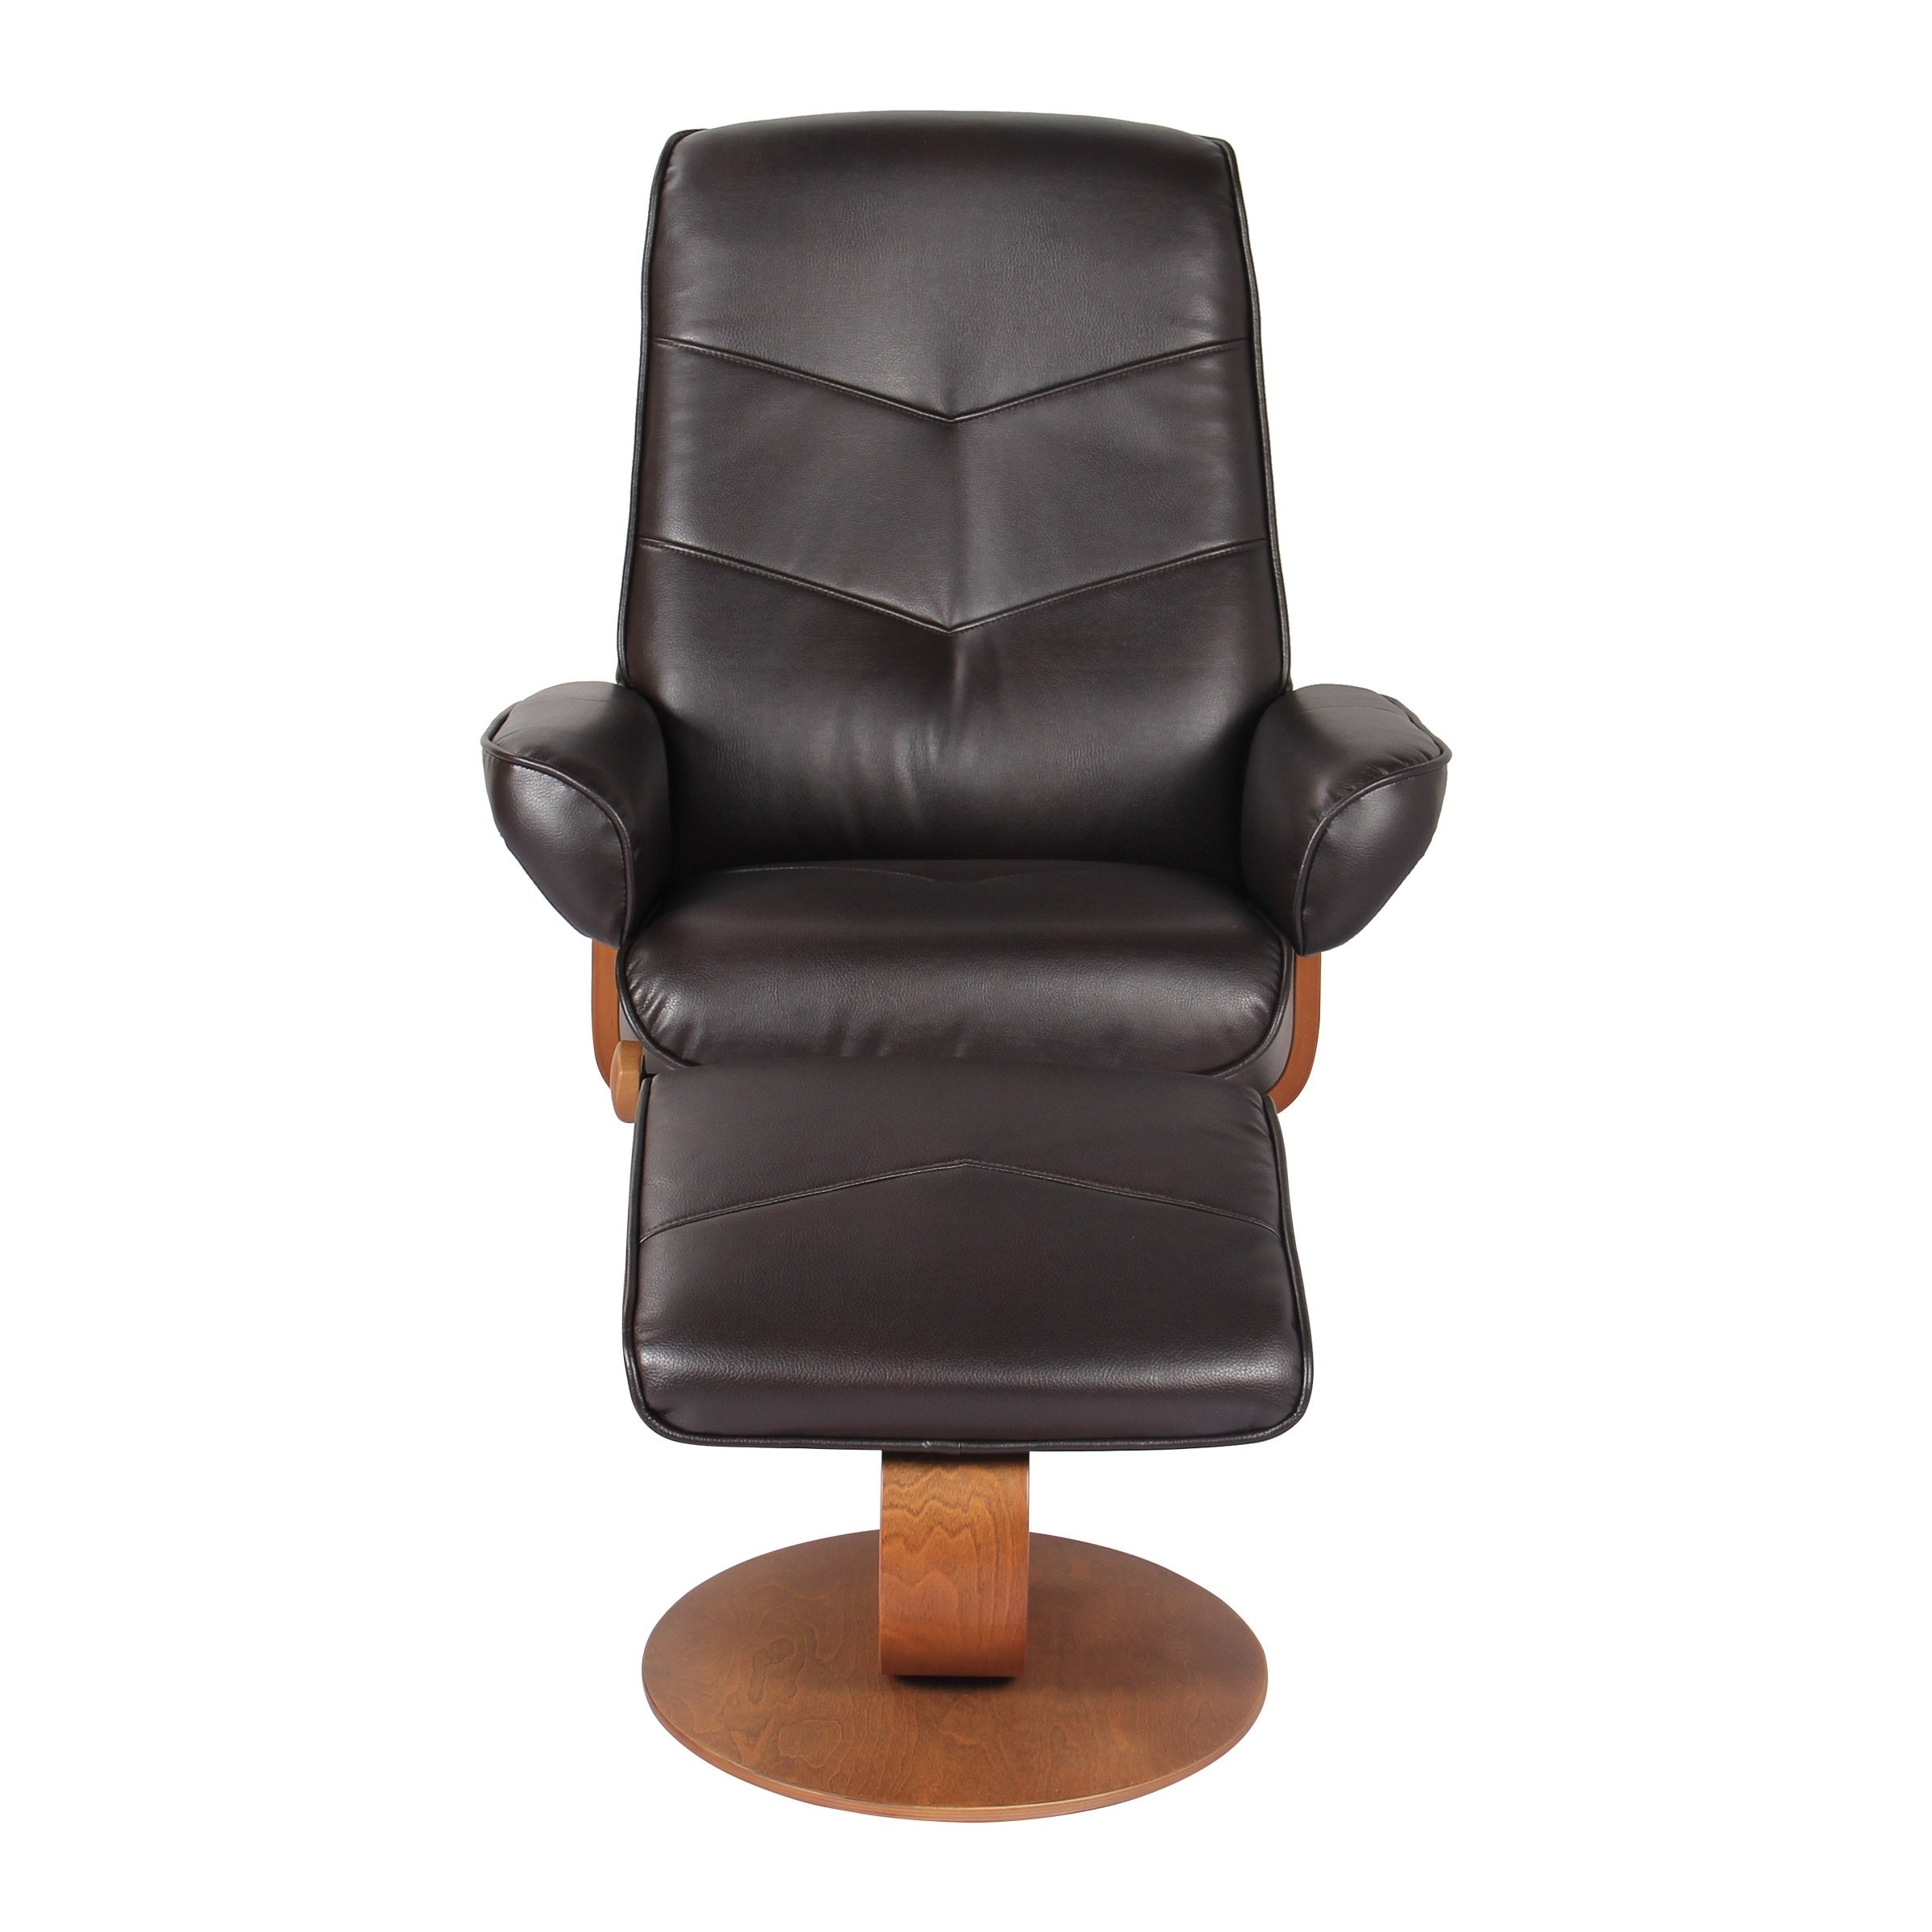 Shop NewRidge Home Swivel Recliner Chair U0026 Ottoman In Java, Verona   Free  Shipping Today   Overstock.com   21609667